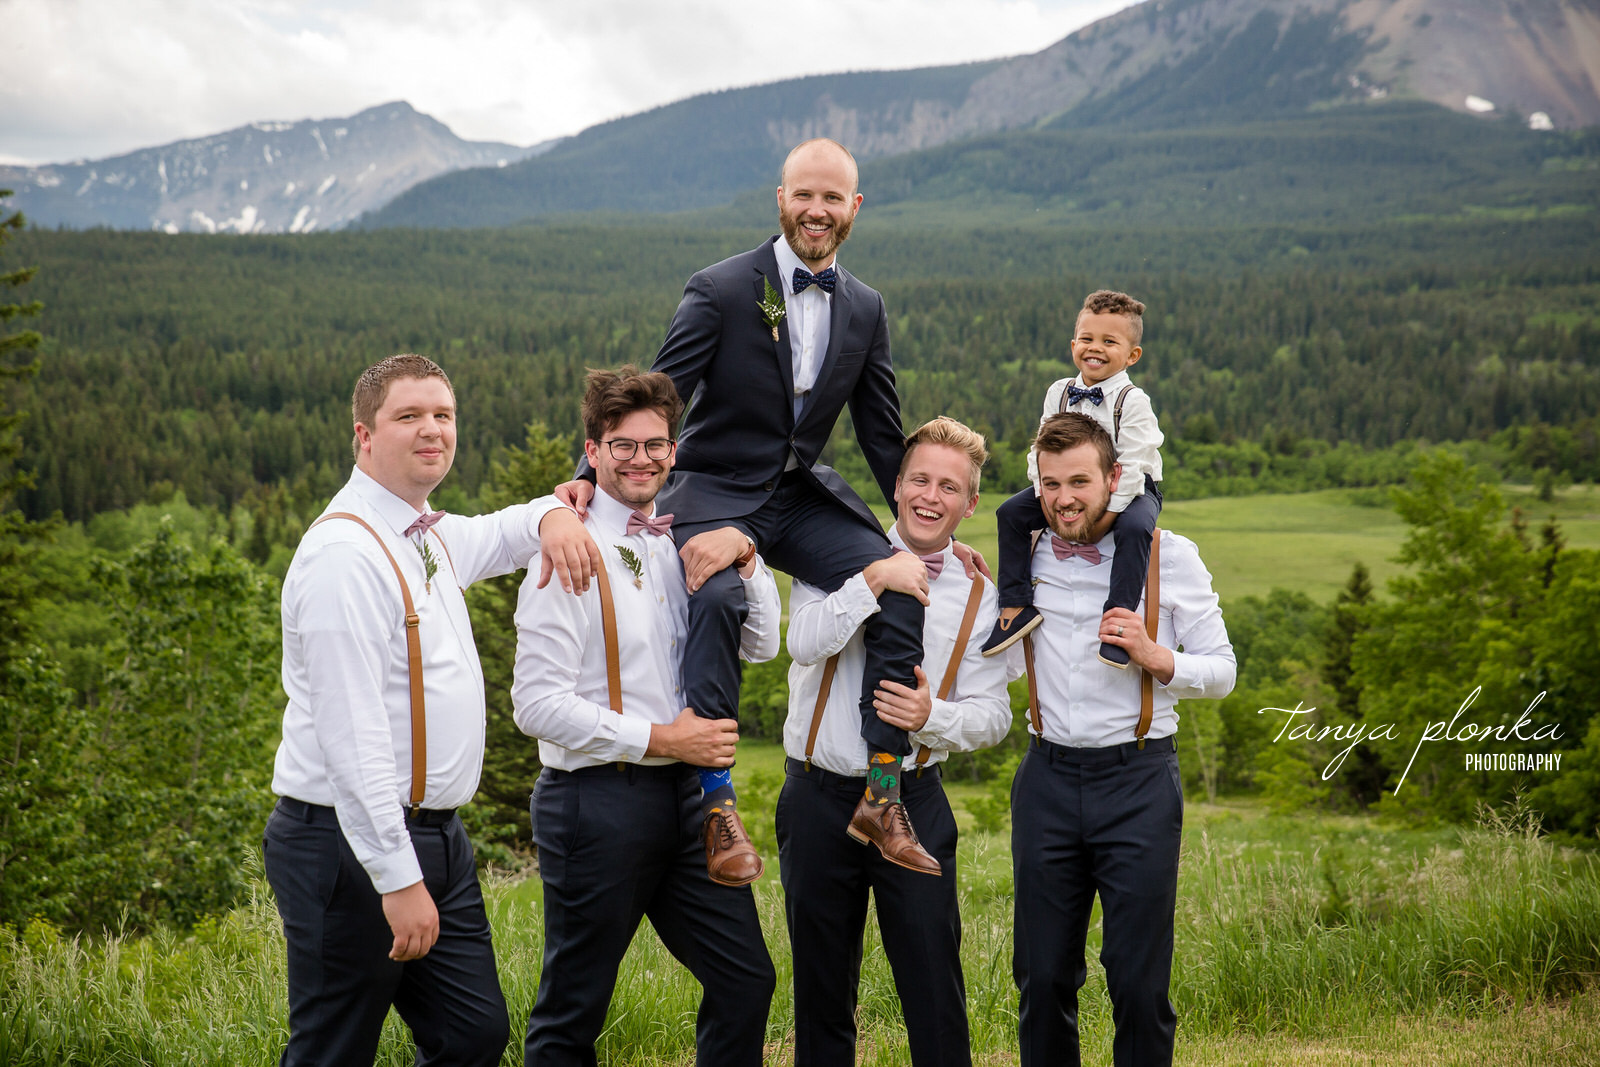 Groomsmen Lifting Groom on their shoulders at Gladstone Mountain Ranch